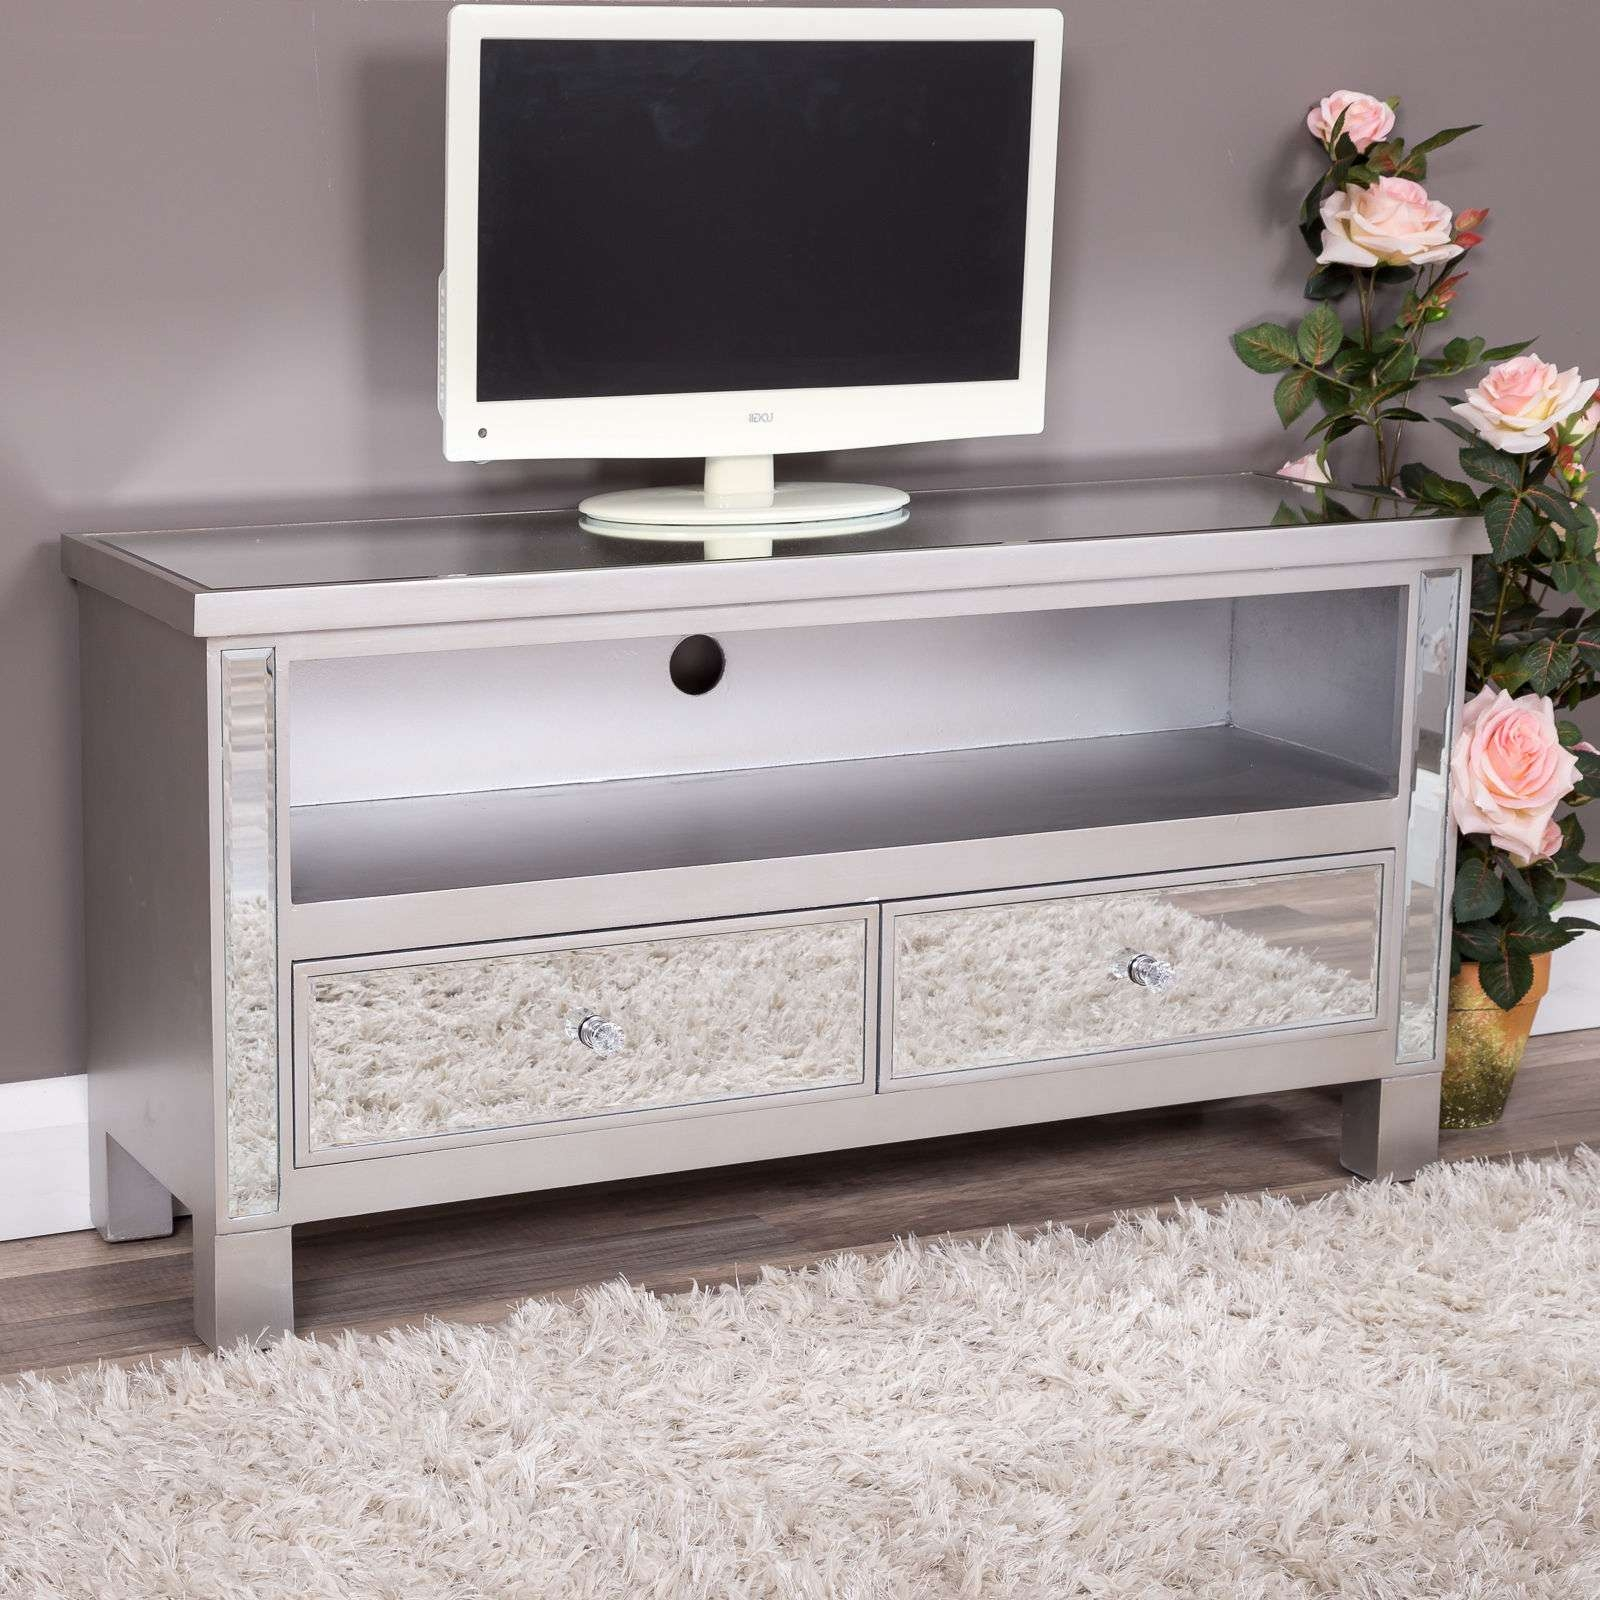 Mirrored Tv Stand | Ebay Inside Silver Corner Tv Stands (View 8 of 15)